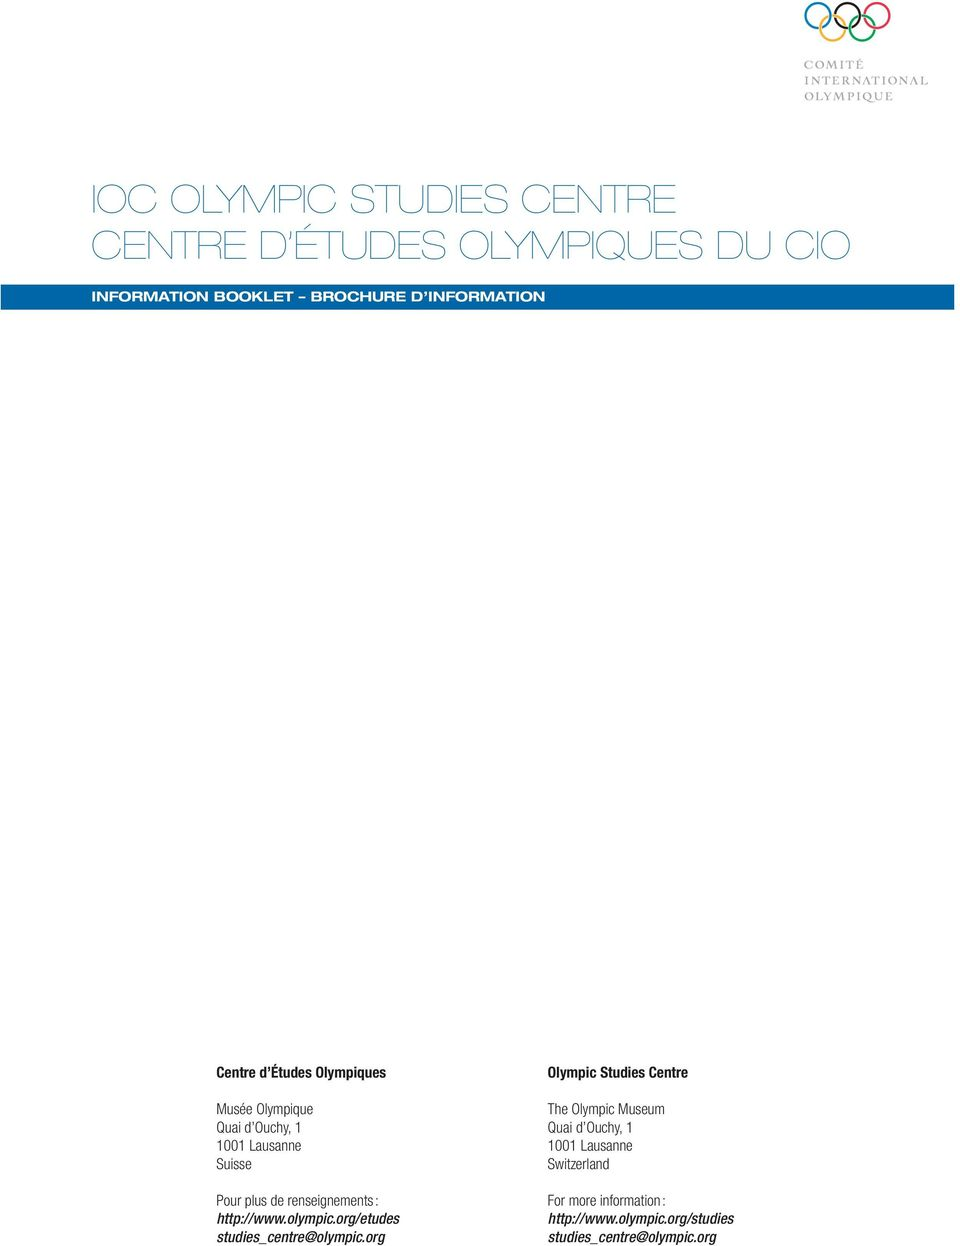 : http://www.olympic.org/etudes studies_centre@olympic.